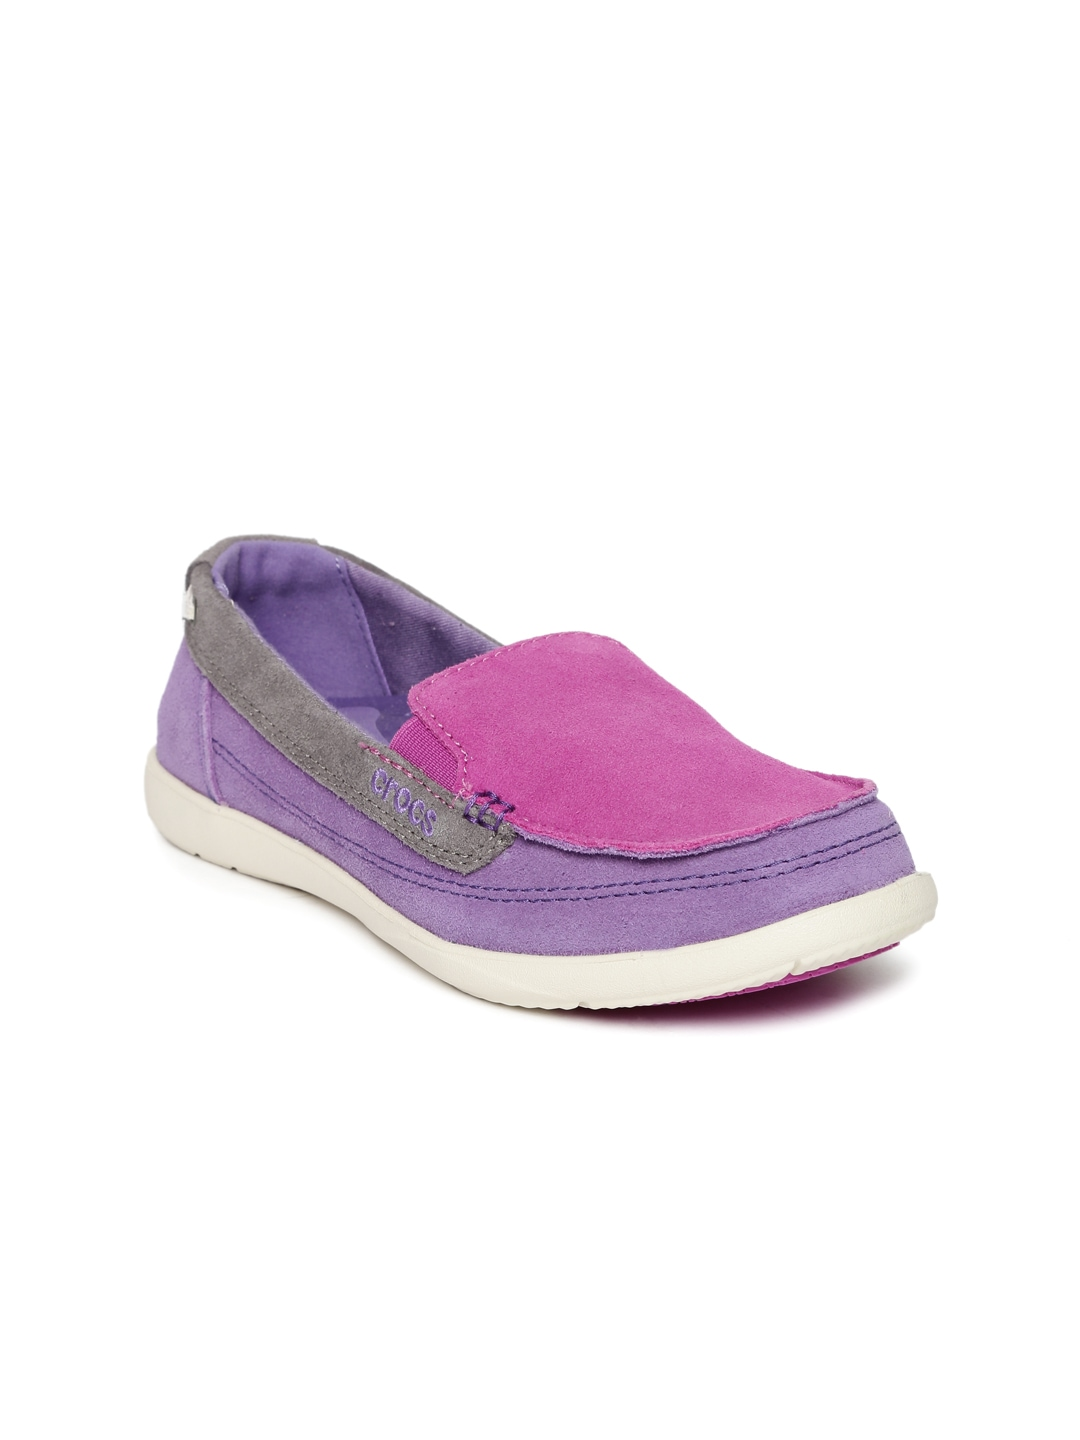 Crocs Women Pink & Purple Colourblocked Walu Suede Slip-On ...